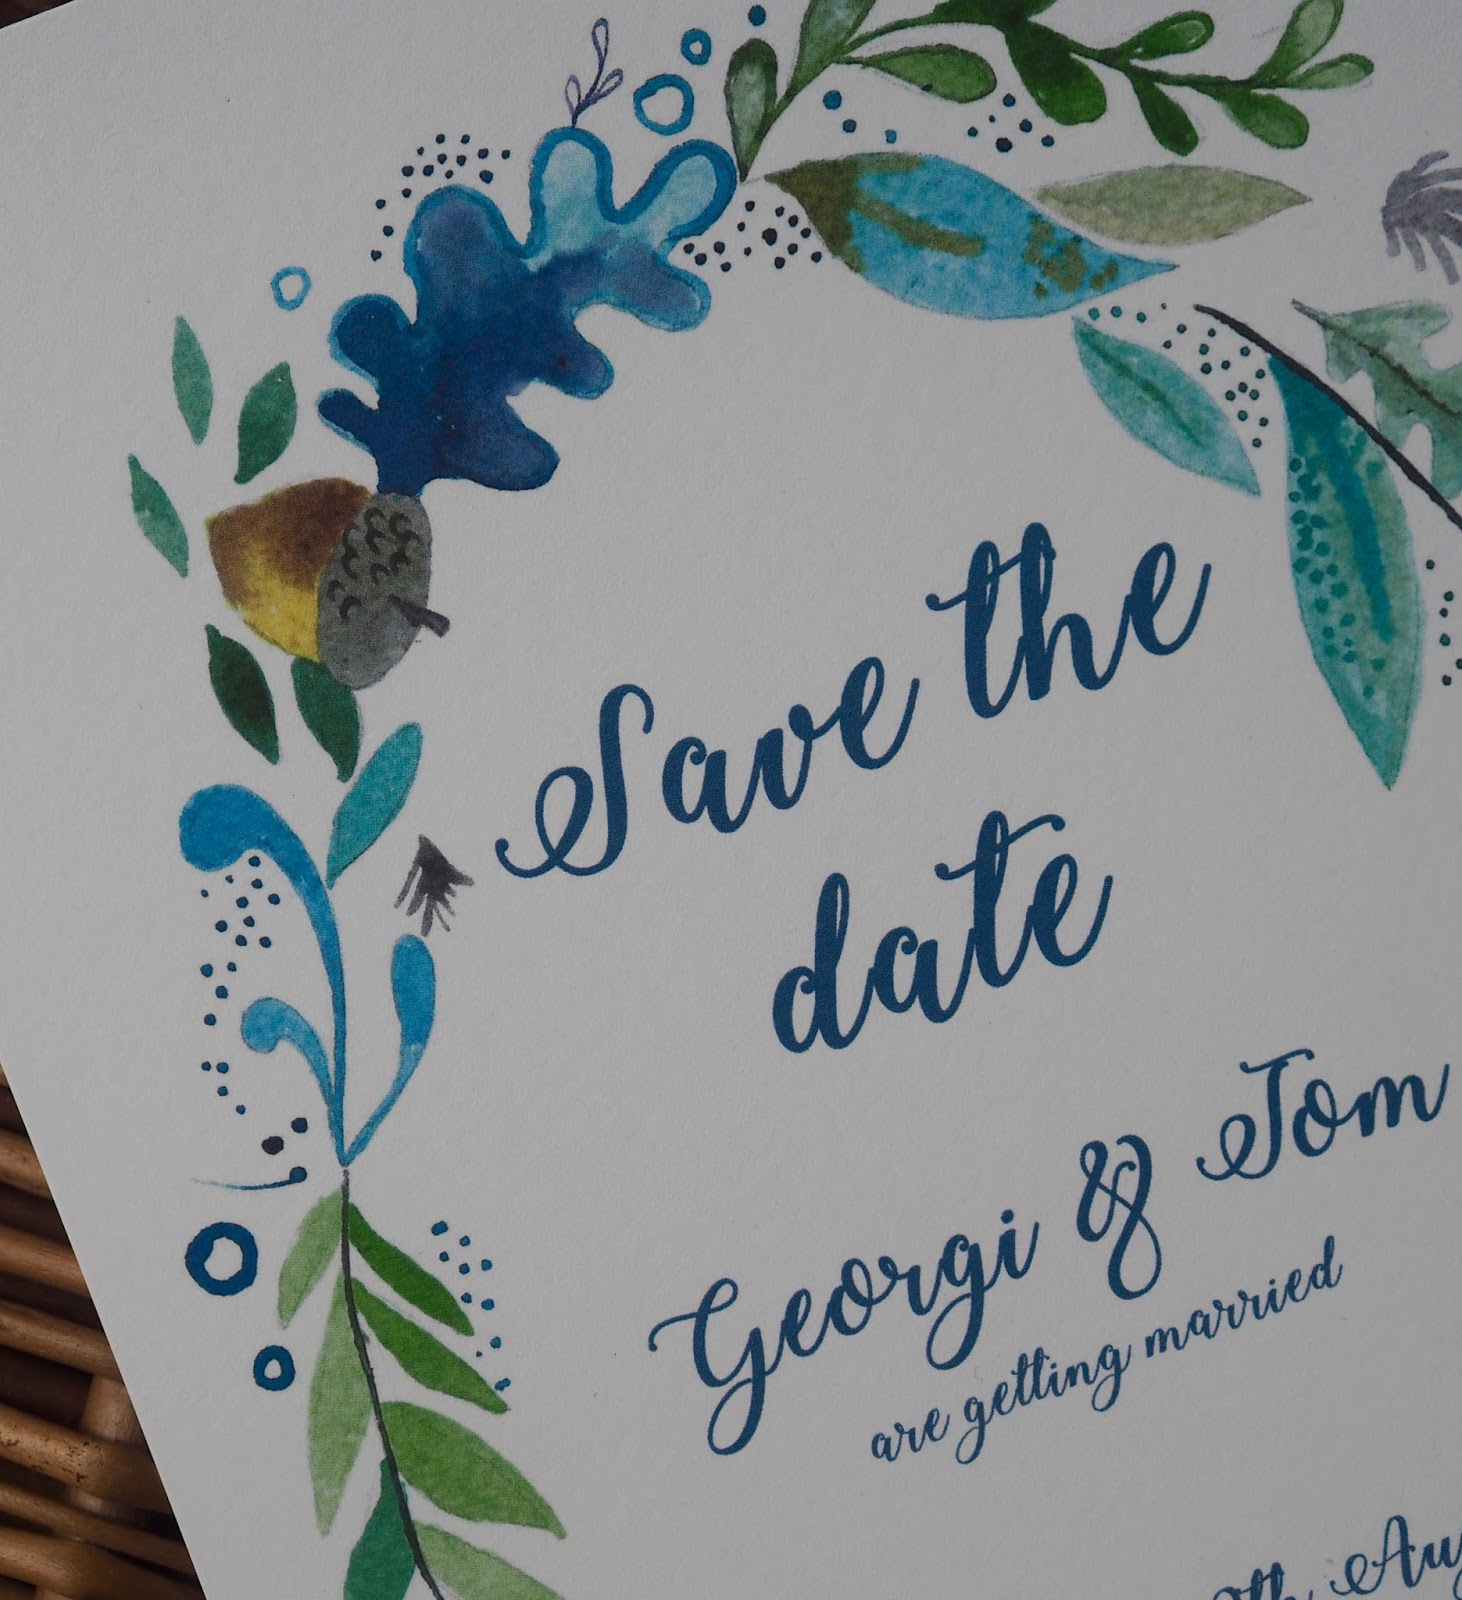 Save some of the wedding budget by designing your own save the date stationery.